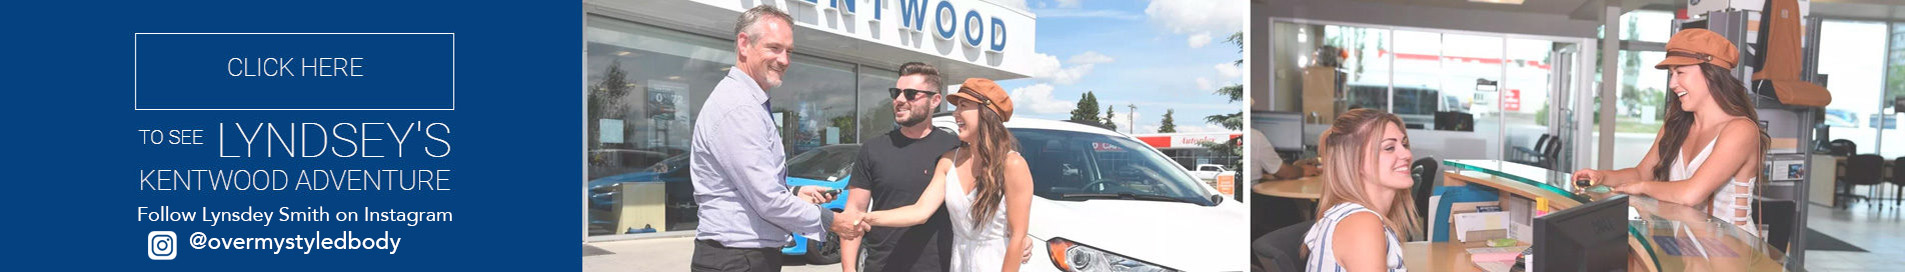 Lyndsey Experience at Kentwood Ford